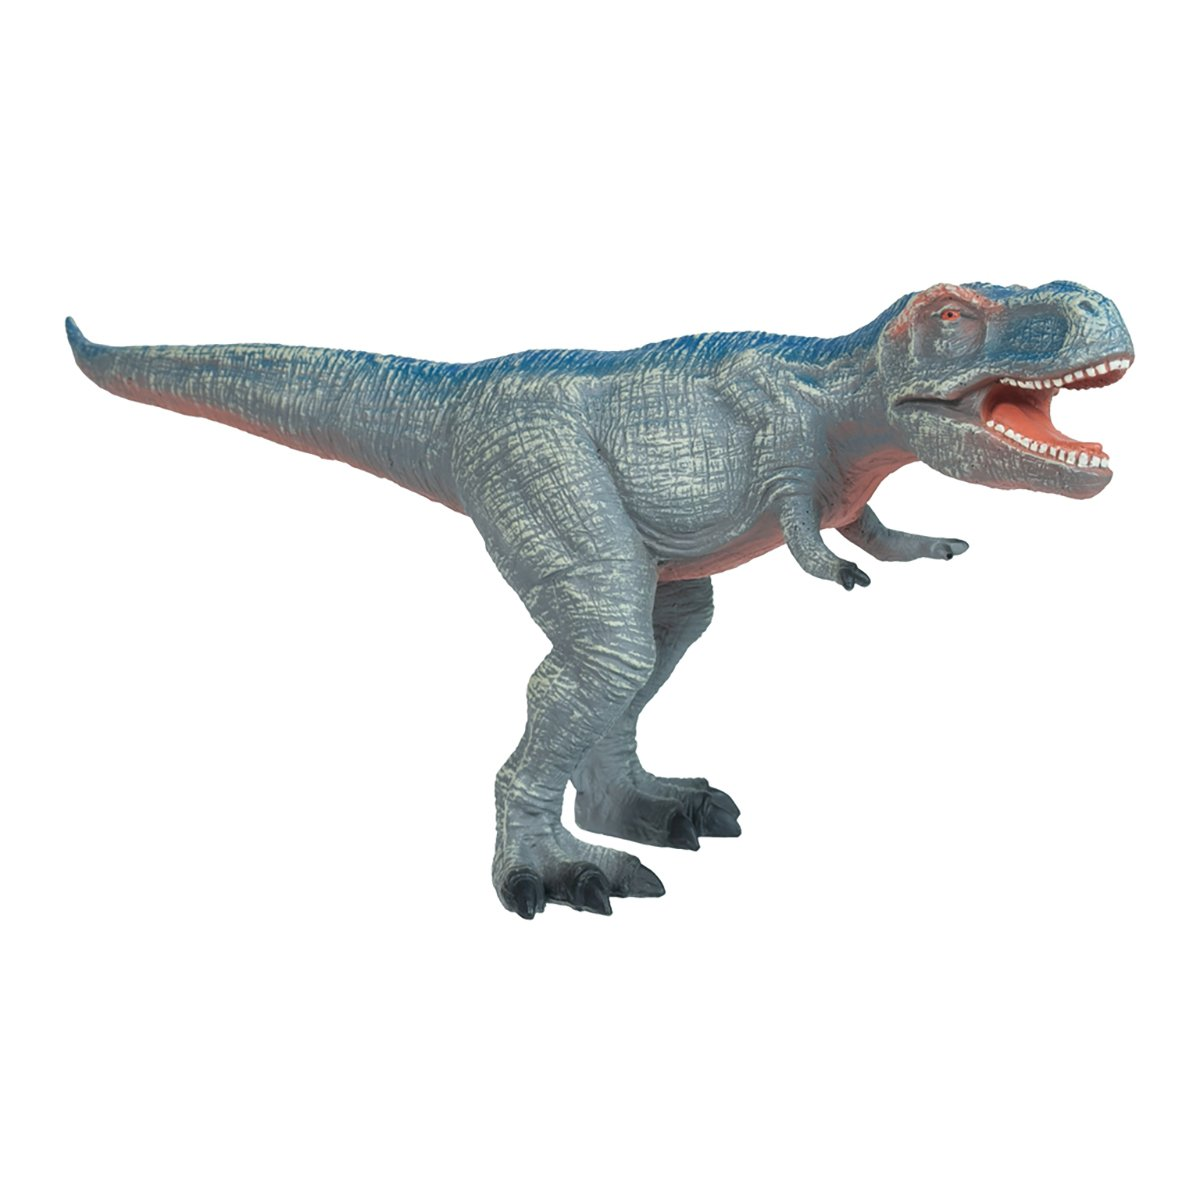 Figurina dinozaur T-Rez, Toy Major, 38 cm